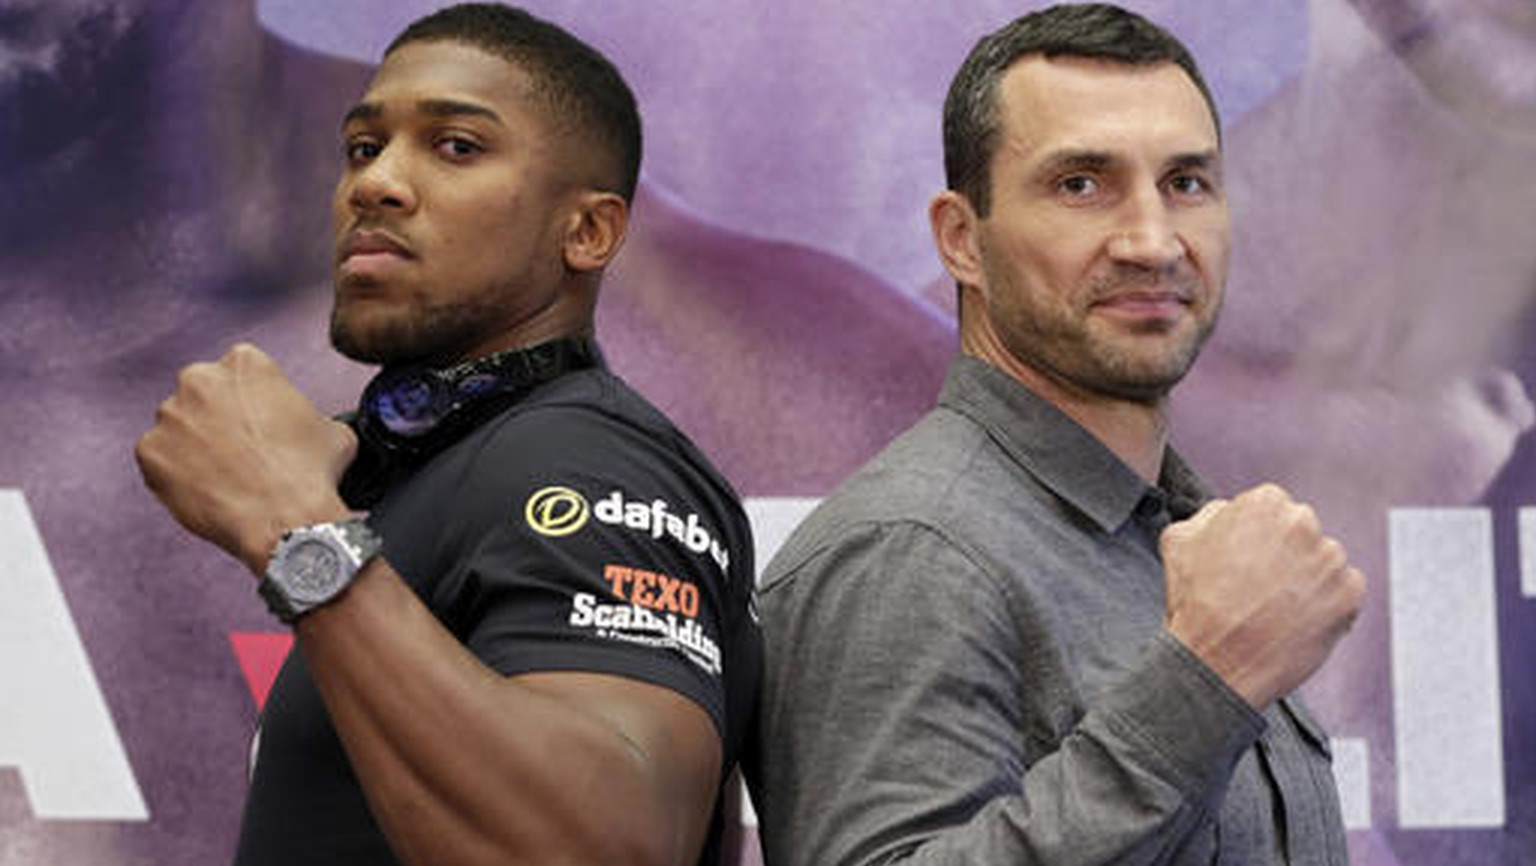 FILE - In this Jan. 31, 2017, file photo, IBF heavyweight champion Anthony Joshua, left, and former heavyweight champion Wladimir Klitschko pose for photos during a news conference at New York's Madison Square Garden. This week, British Olympic gold medalist Joshua meets  Klitschko in a title fight that figures to put a charge into a division that has been neglected for far too long. (AP Photo/Richard Drew, File)